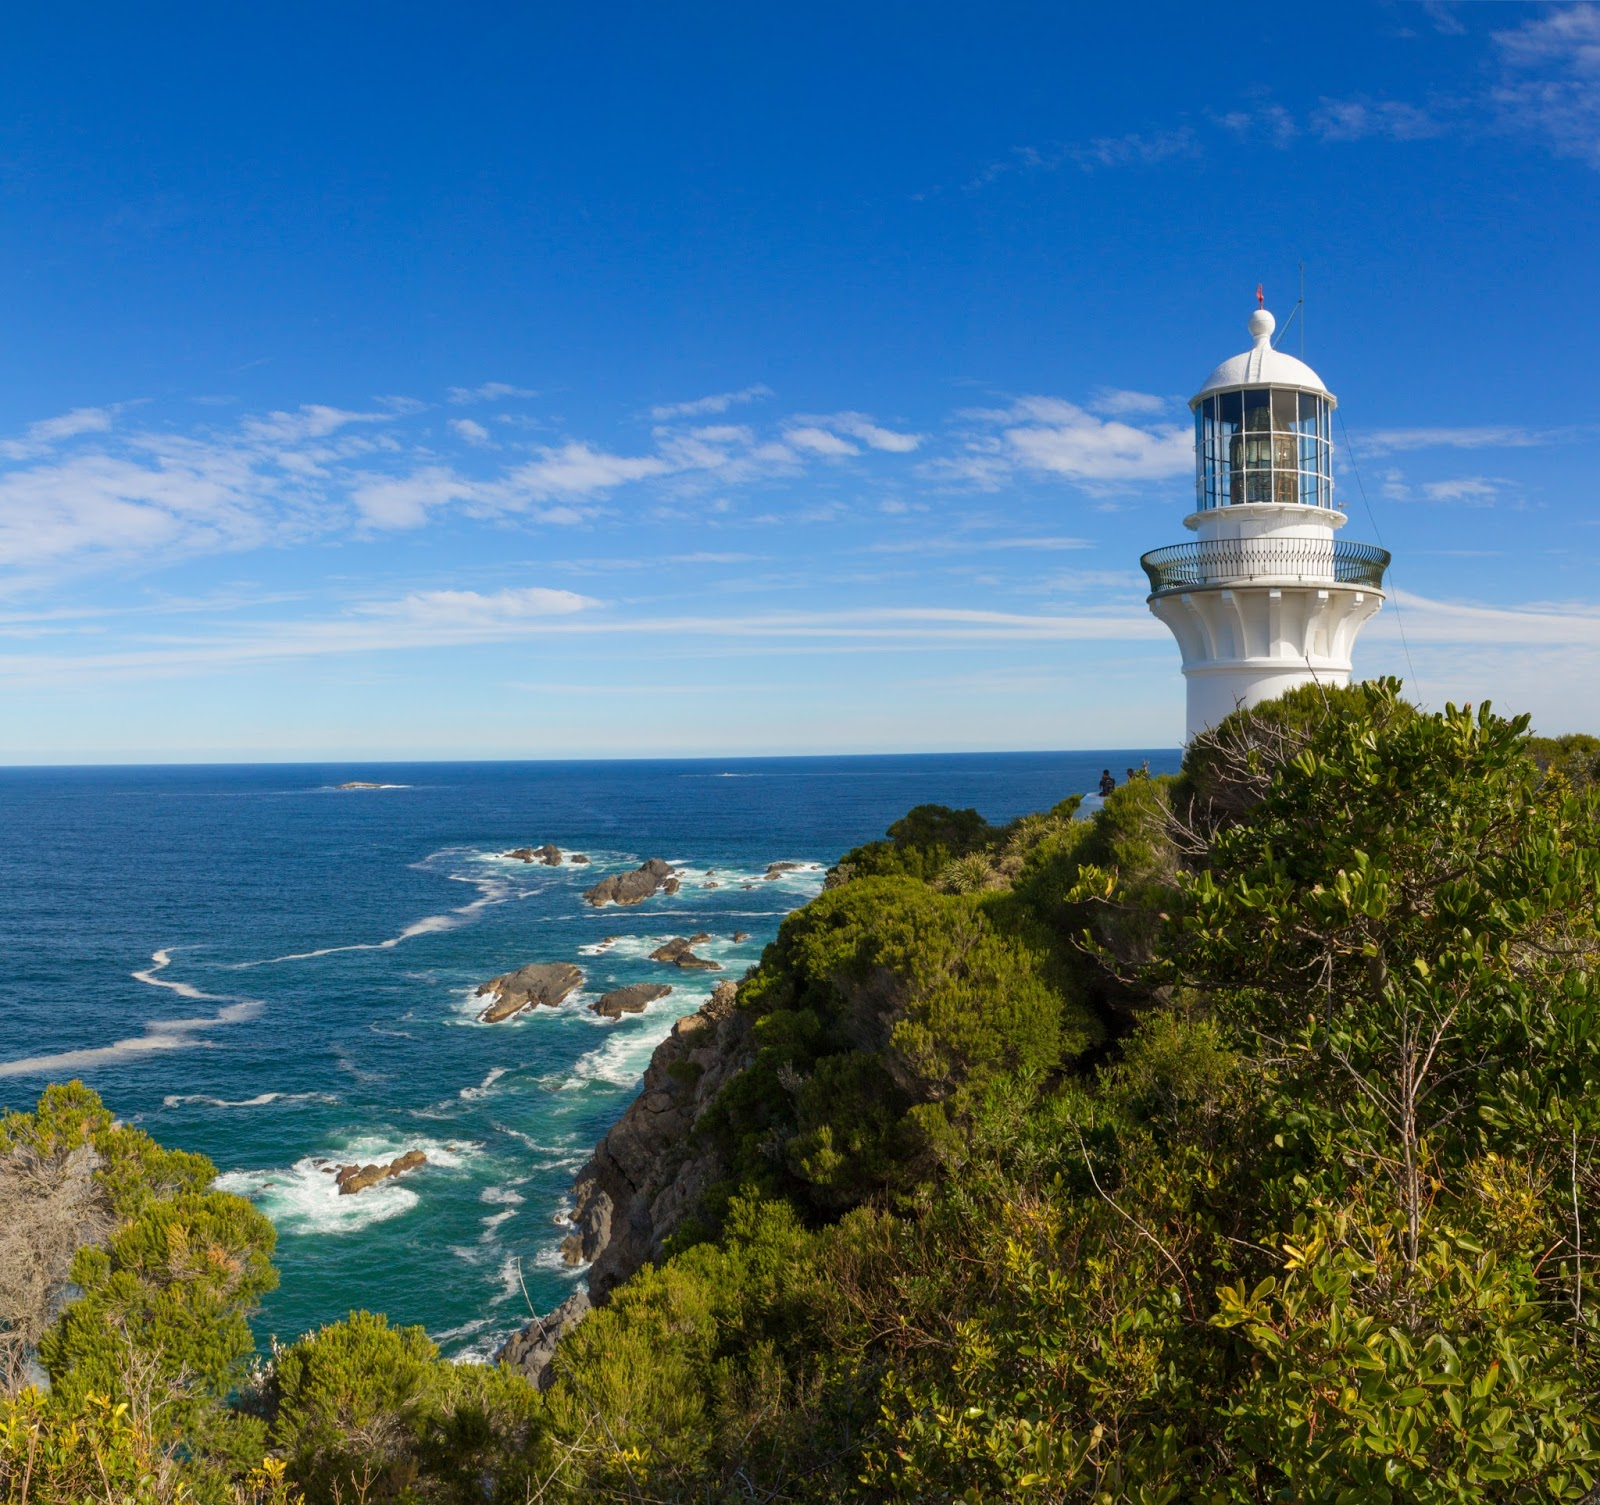 seal rocks travel diary styling my life  sugarloaf point lighthouse keepers' cottages seal rocks nsw